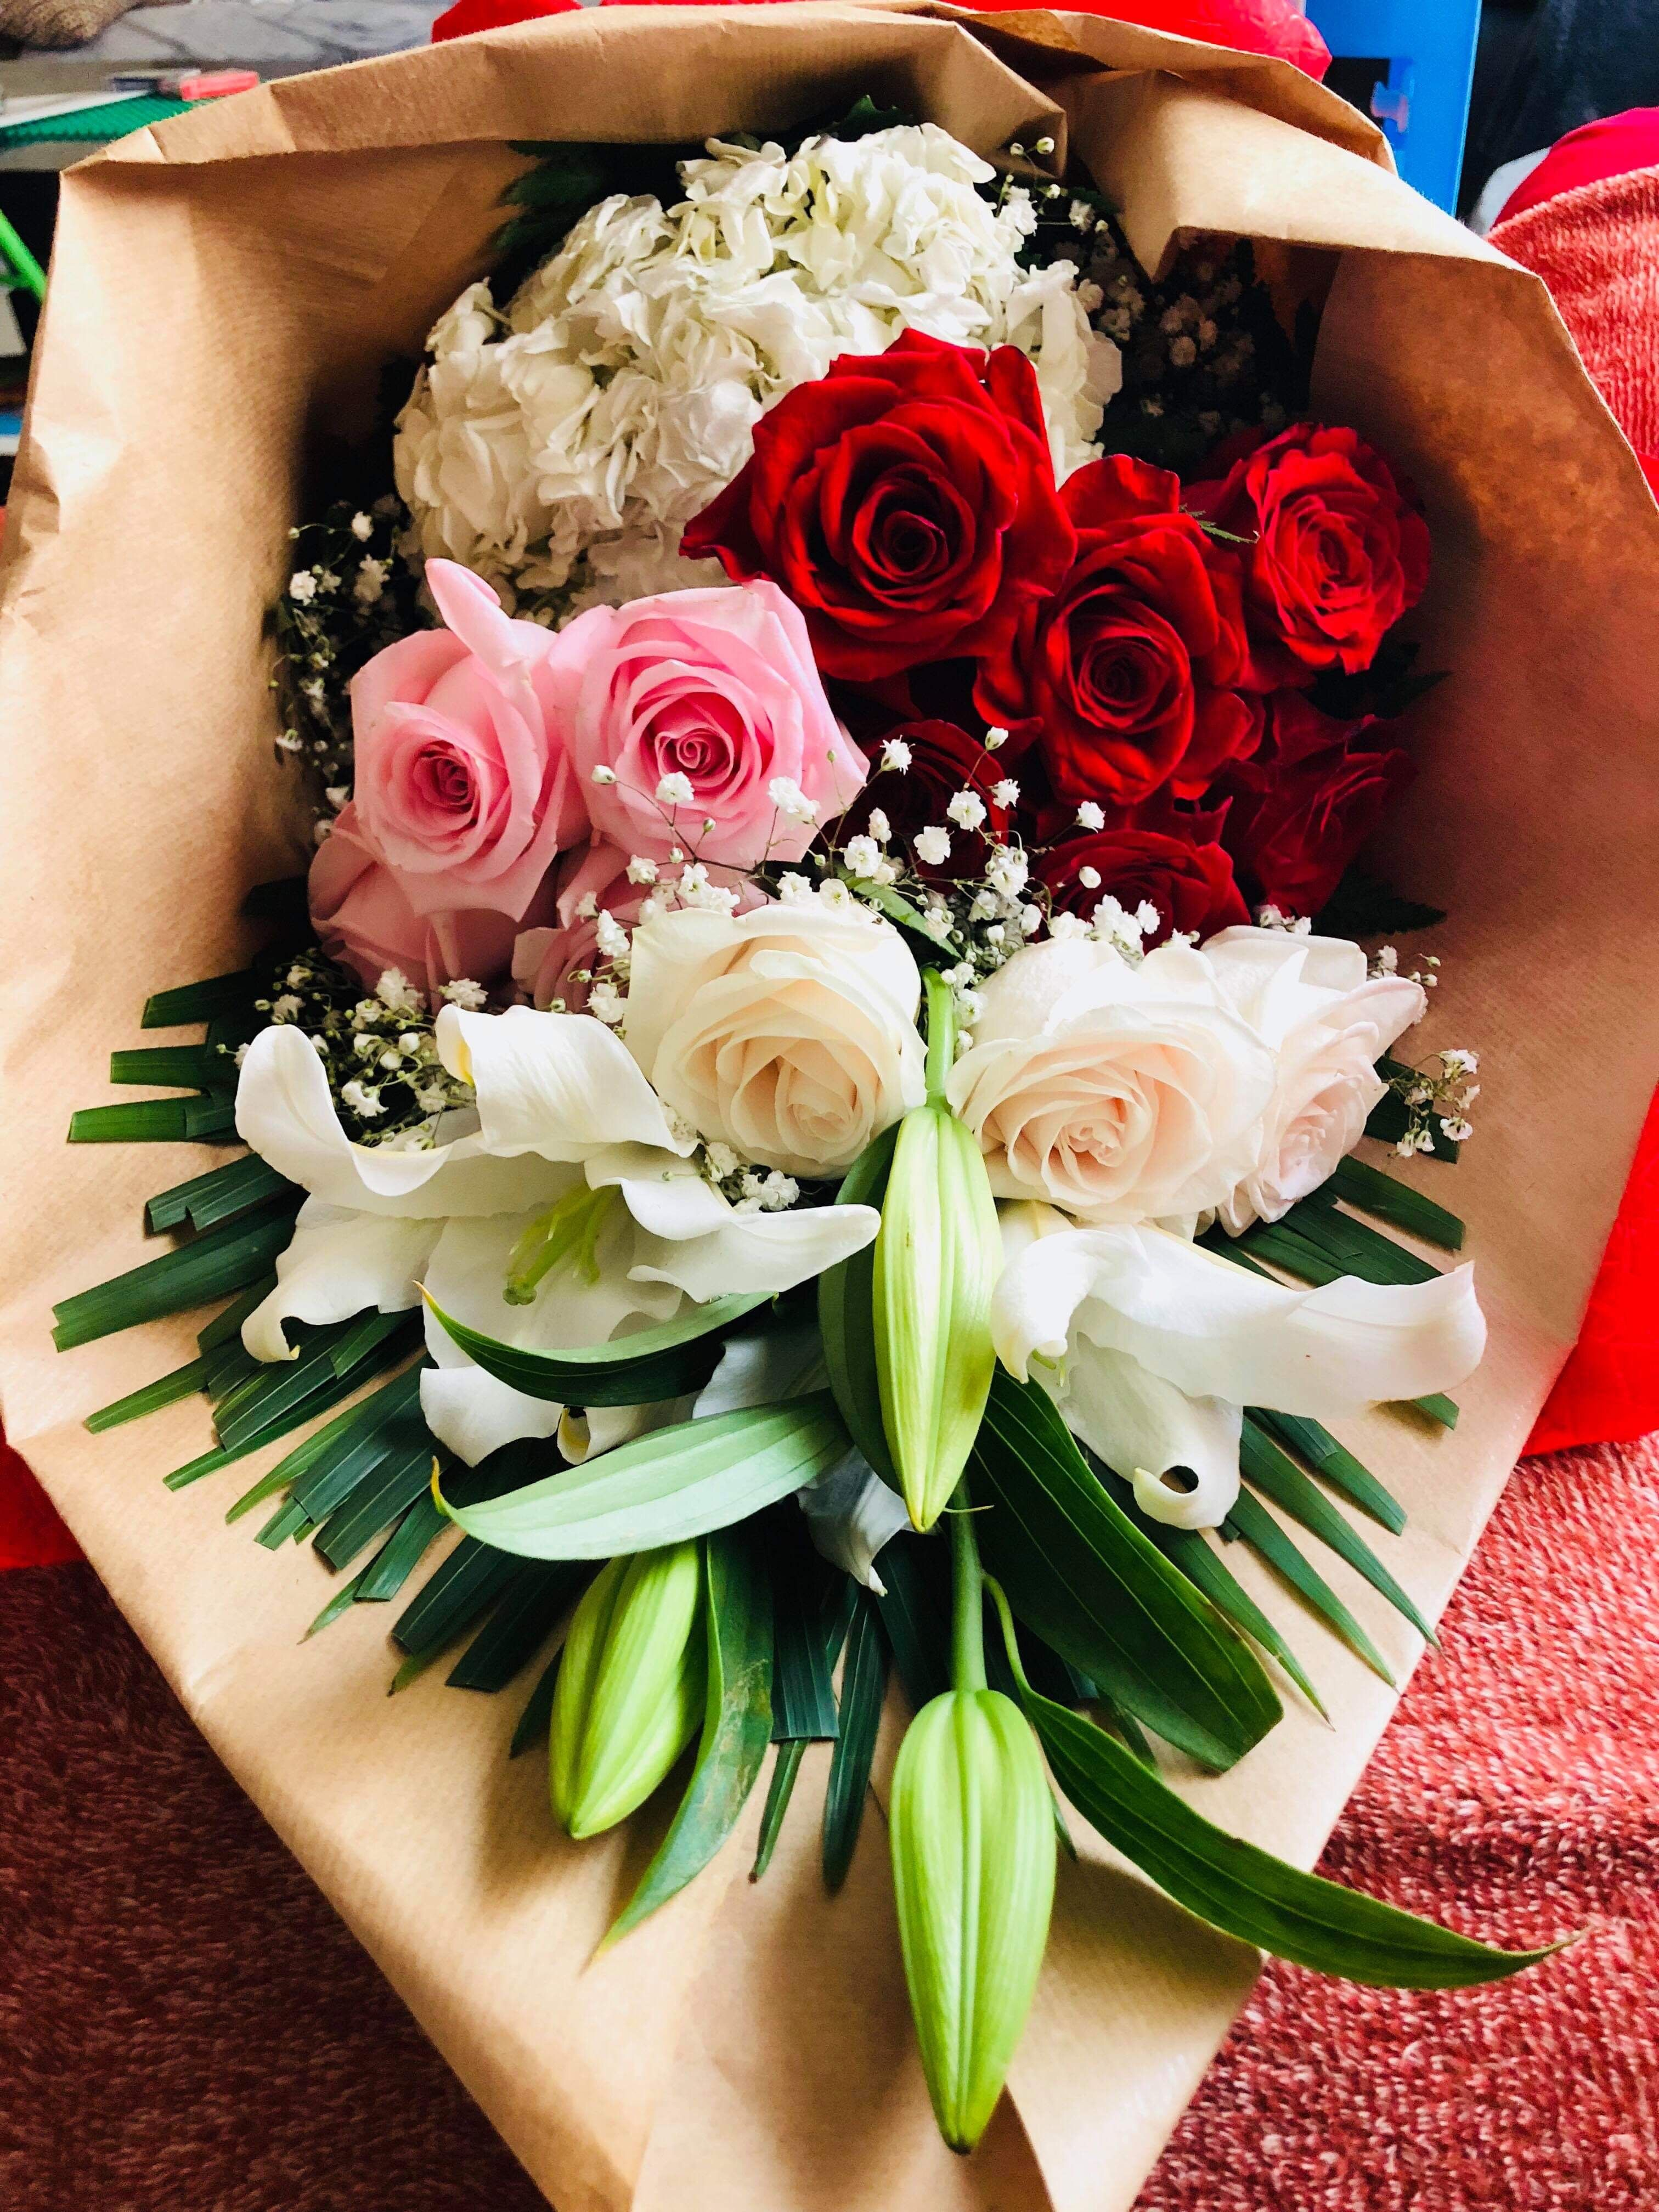 Flower Bouquet From Tubiflorabh Ctto Mr Mrs Follanate Thank